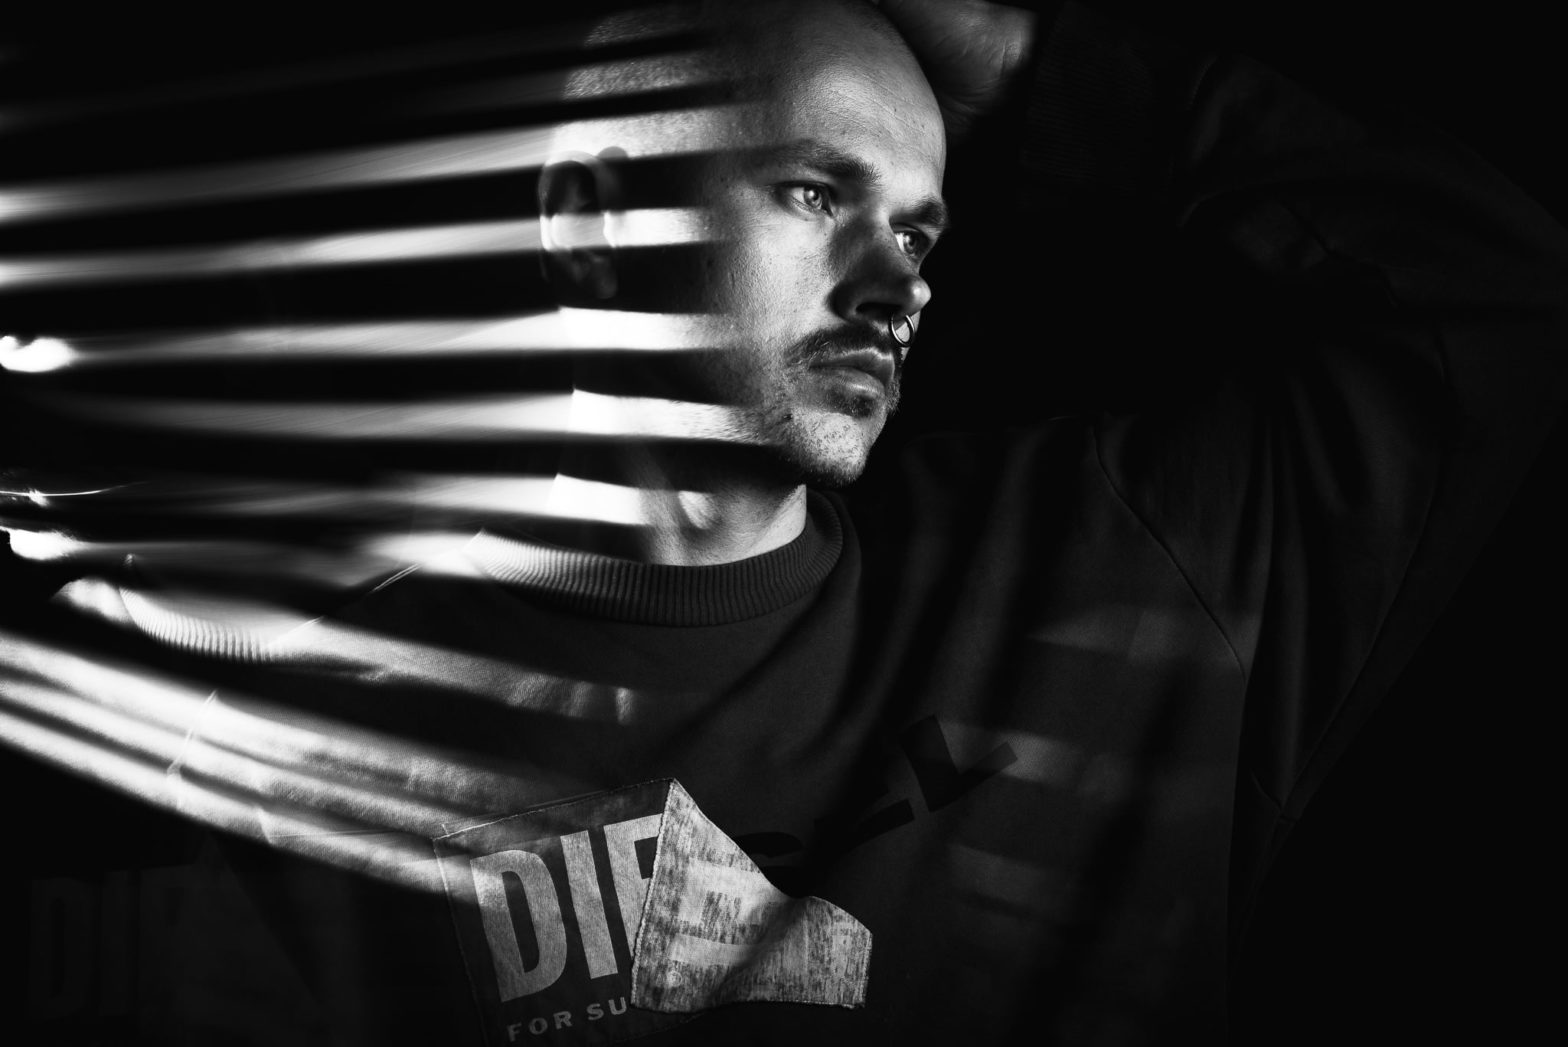 Low key black and white self portrait with a light trail on the left